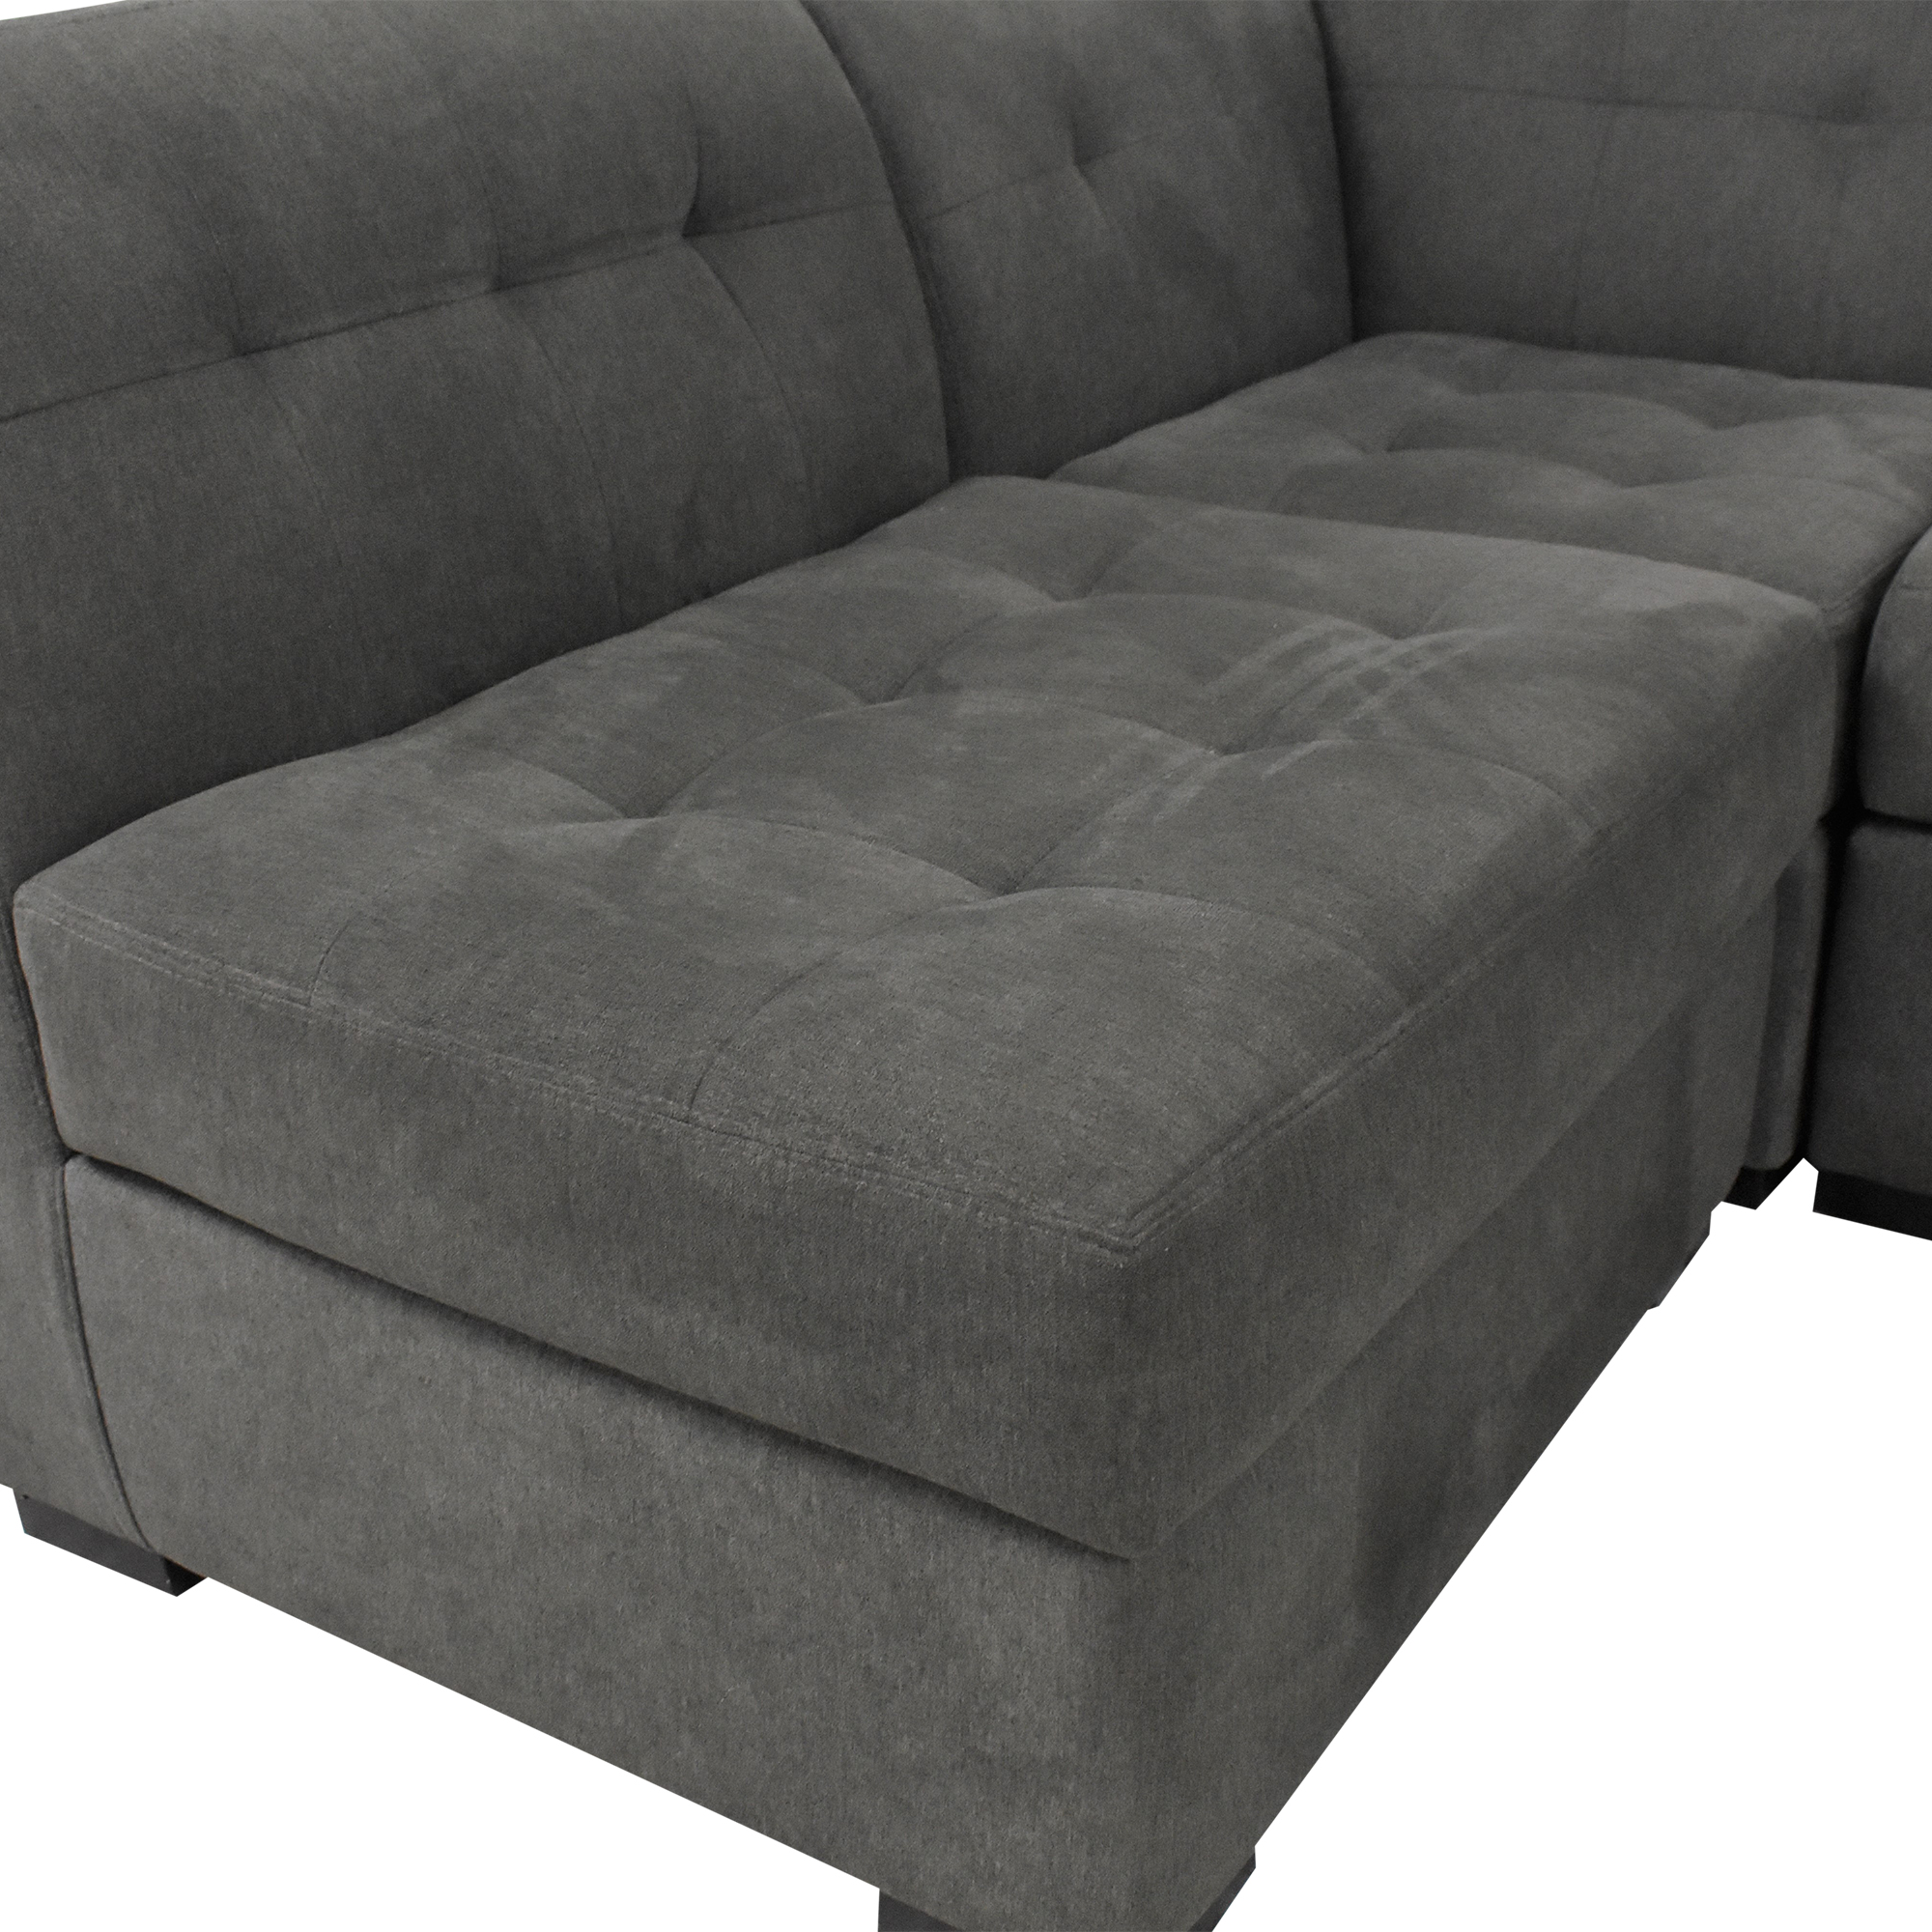 29 off macy s macy s tufted sectional sofa and ottoman sofas